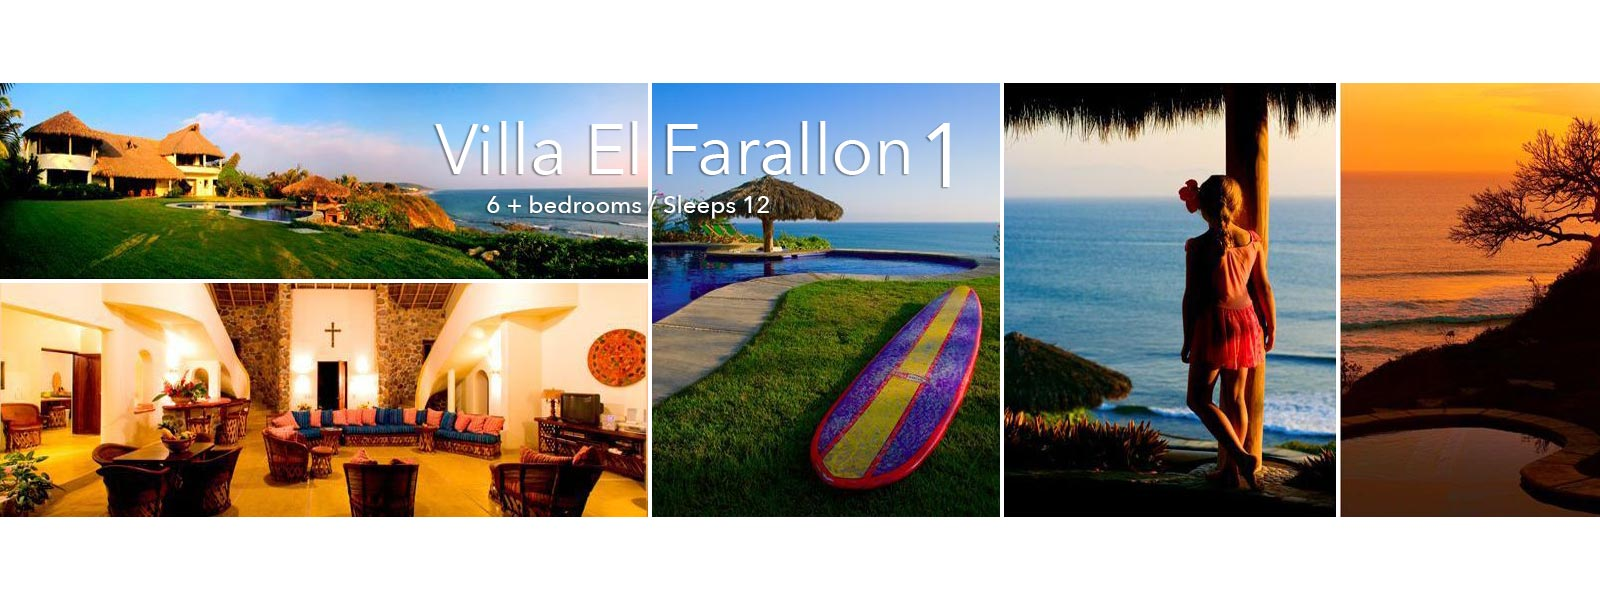 Villa El Farallon 1 - Luxury Punta de Mita Real Estate - Puerto Vallarta, Mexico